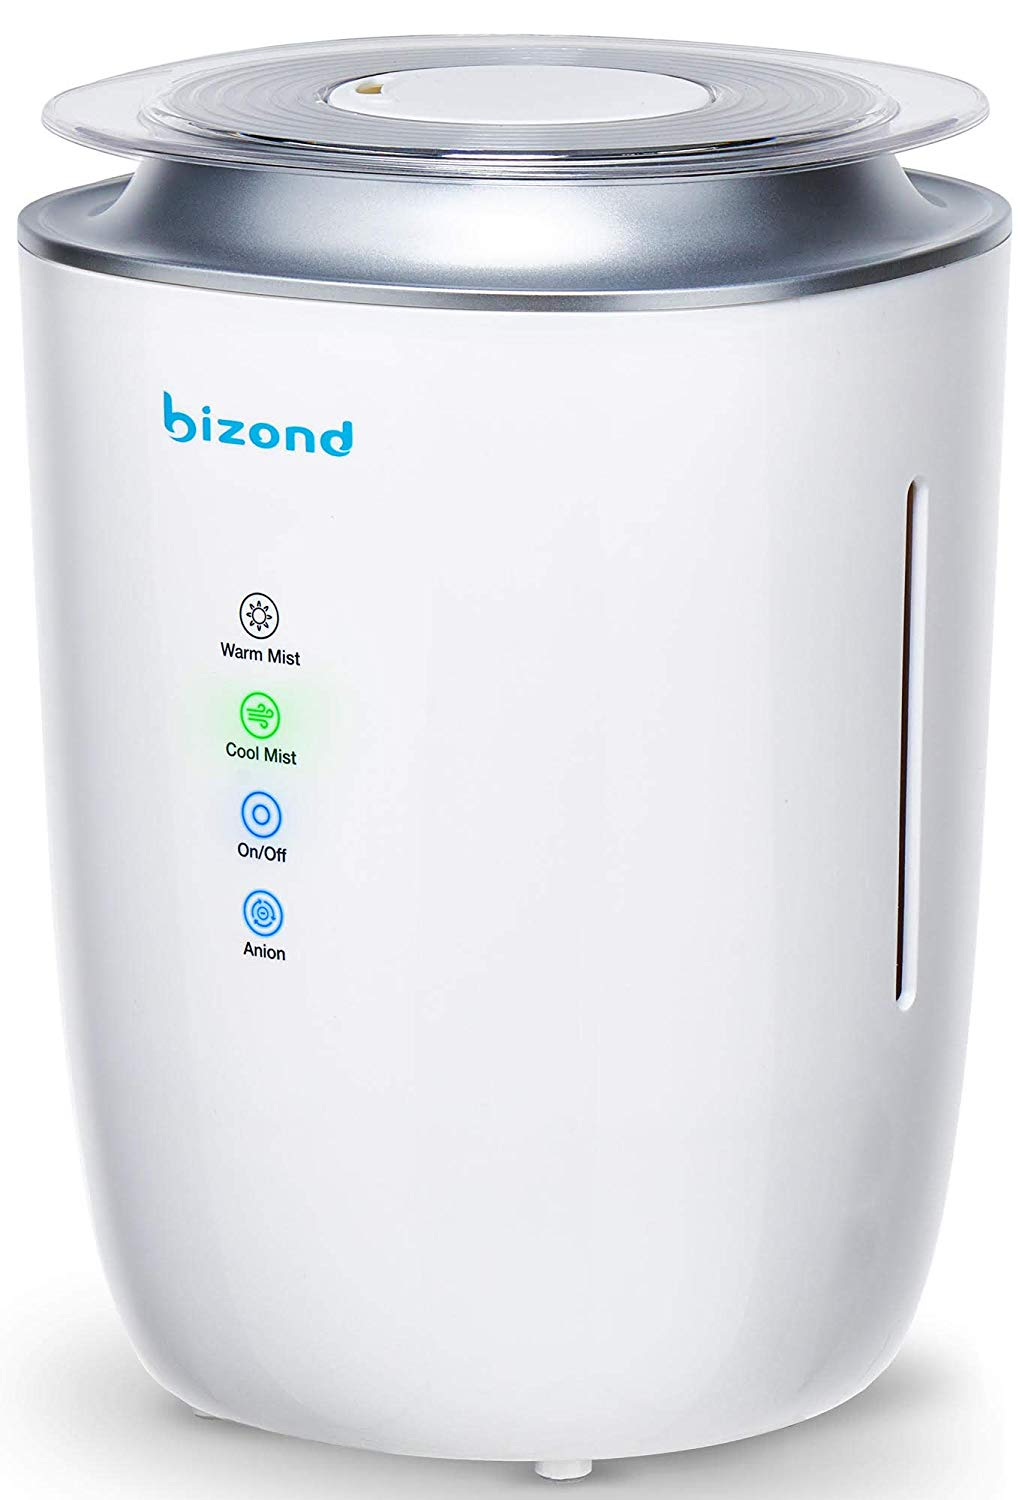 BIZOND Ultrasonic Warm and Cool Mist Humidifier - best humidifier for apartment